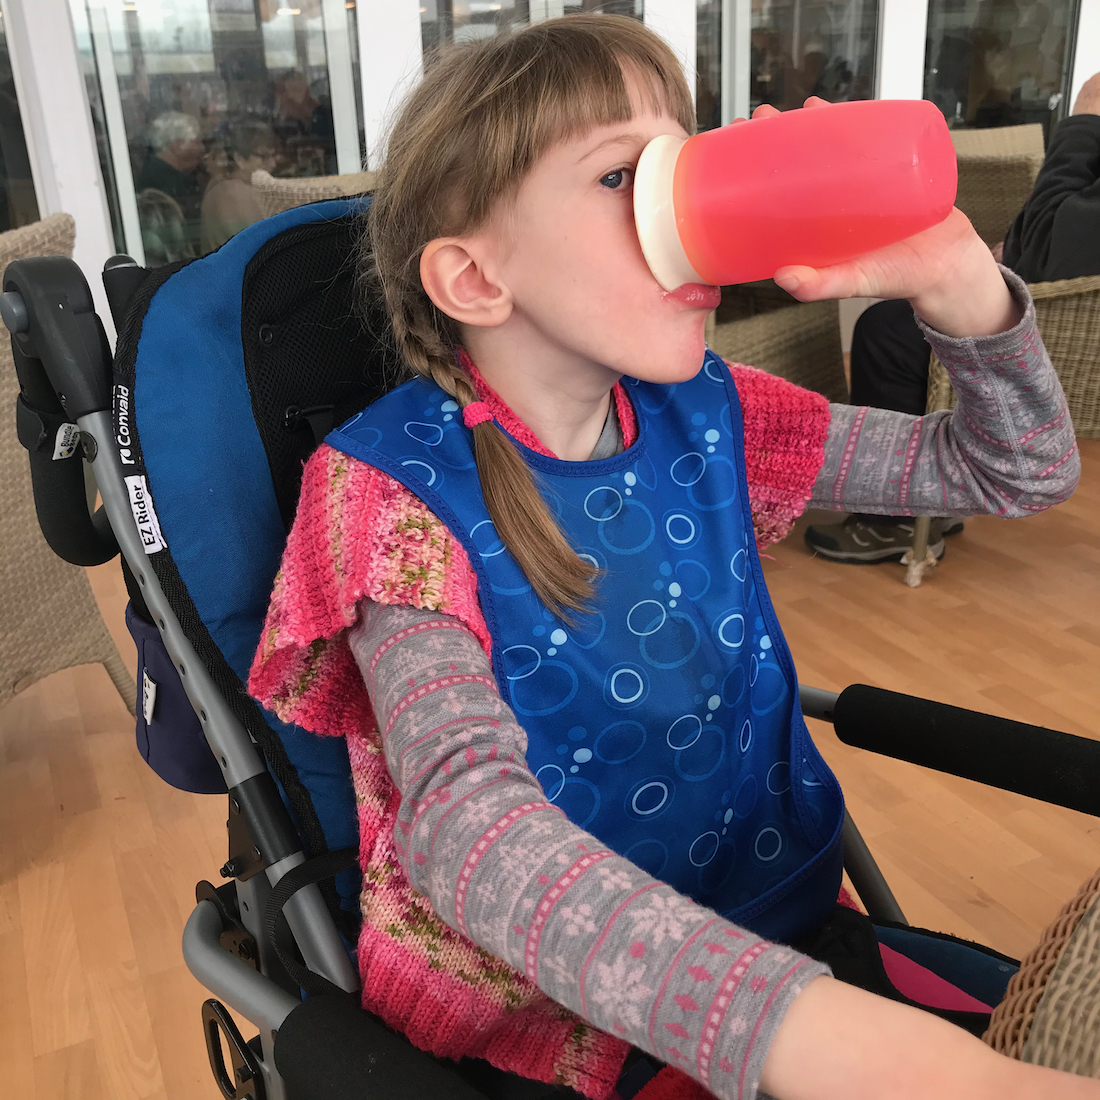 Young girl in a wheelchair wearing a blue tabard bib and drinking from a pink cup